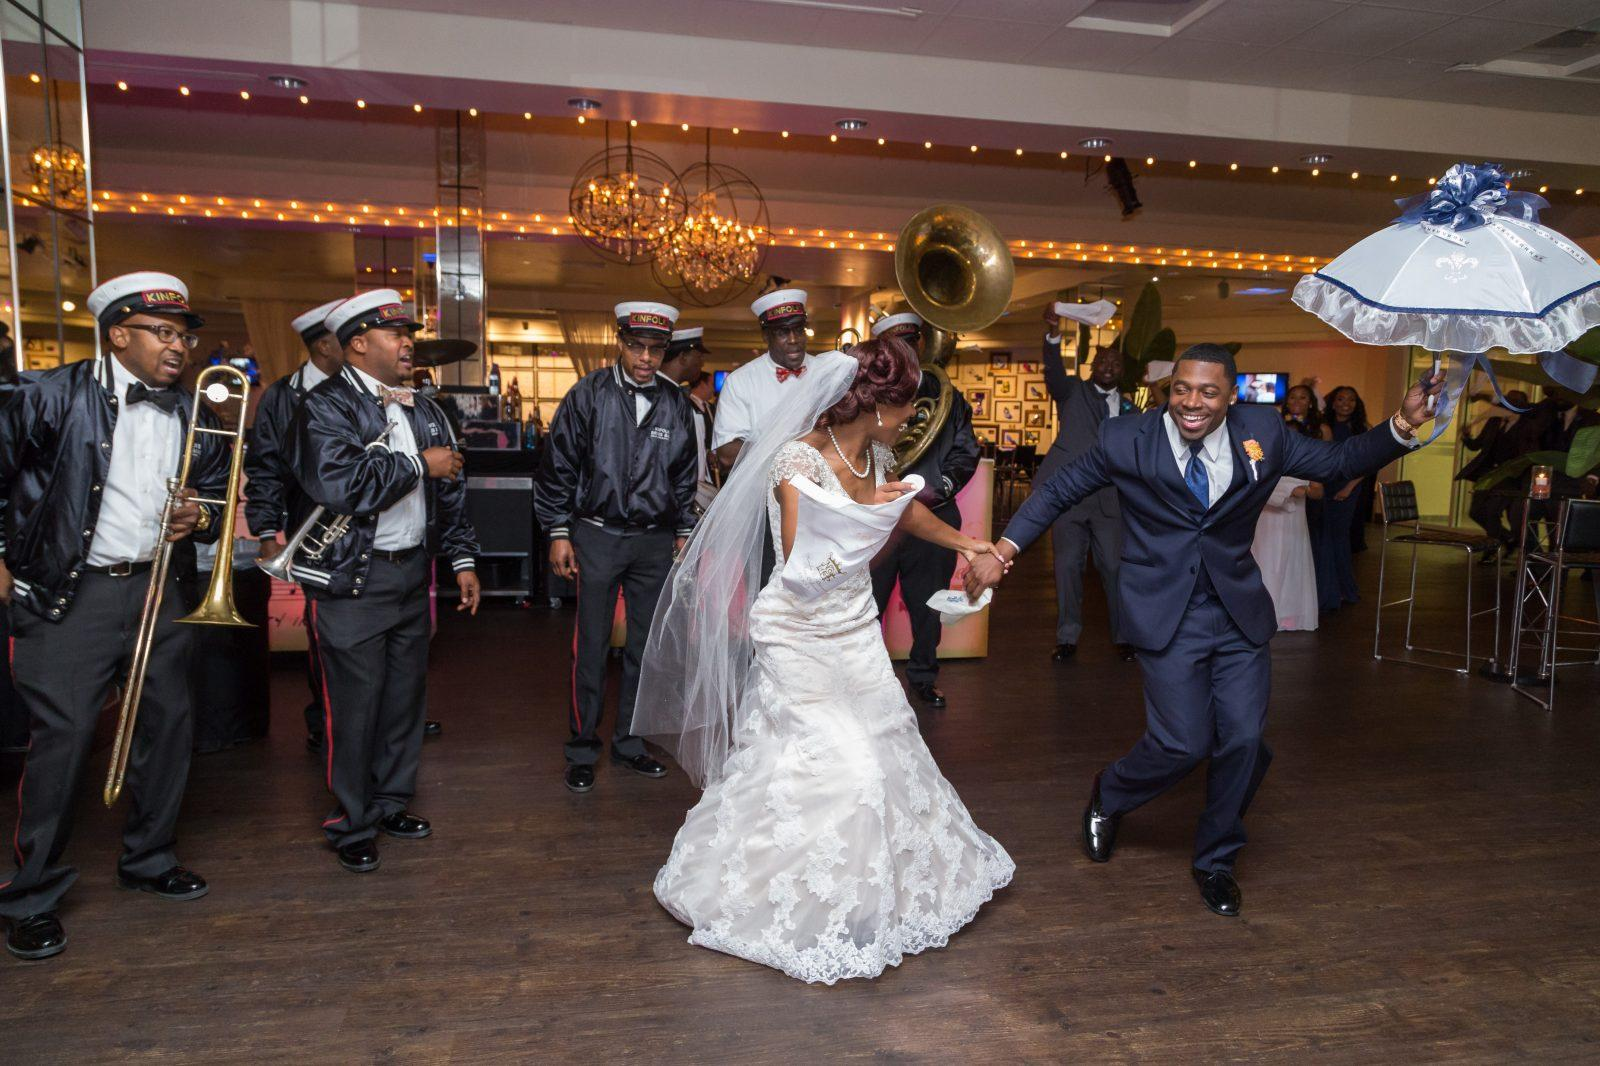 A bride and groom dance while a brass band plays. Photo: CR Photography